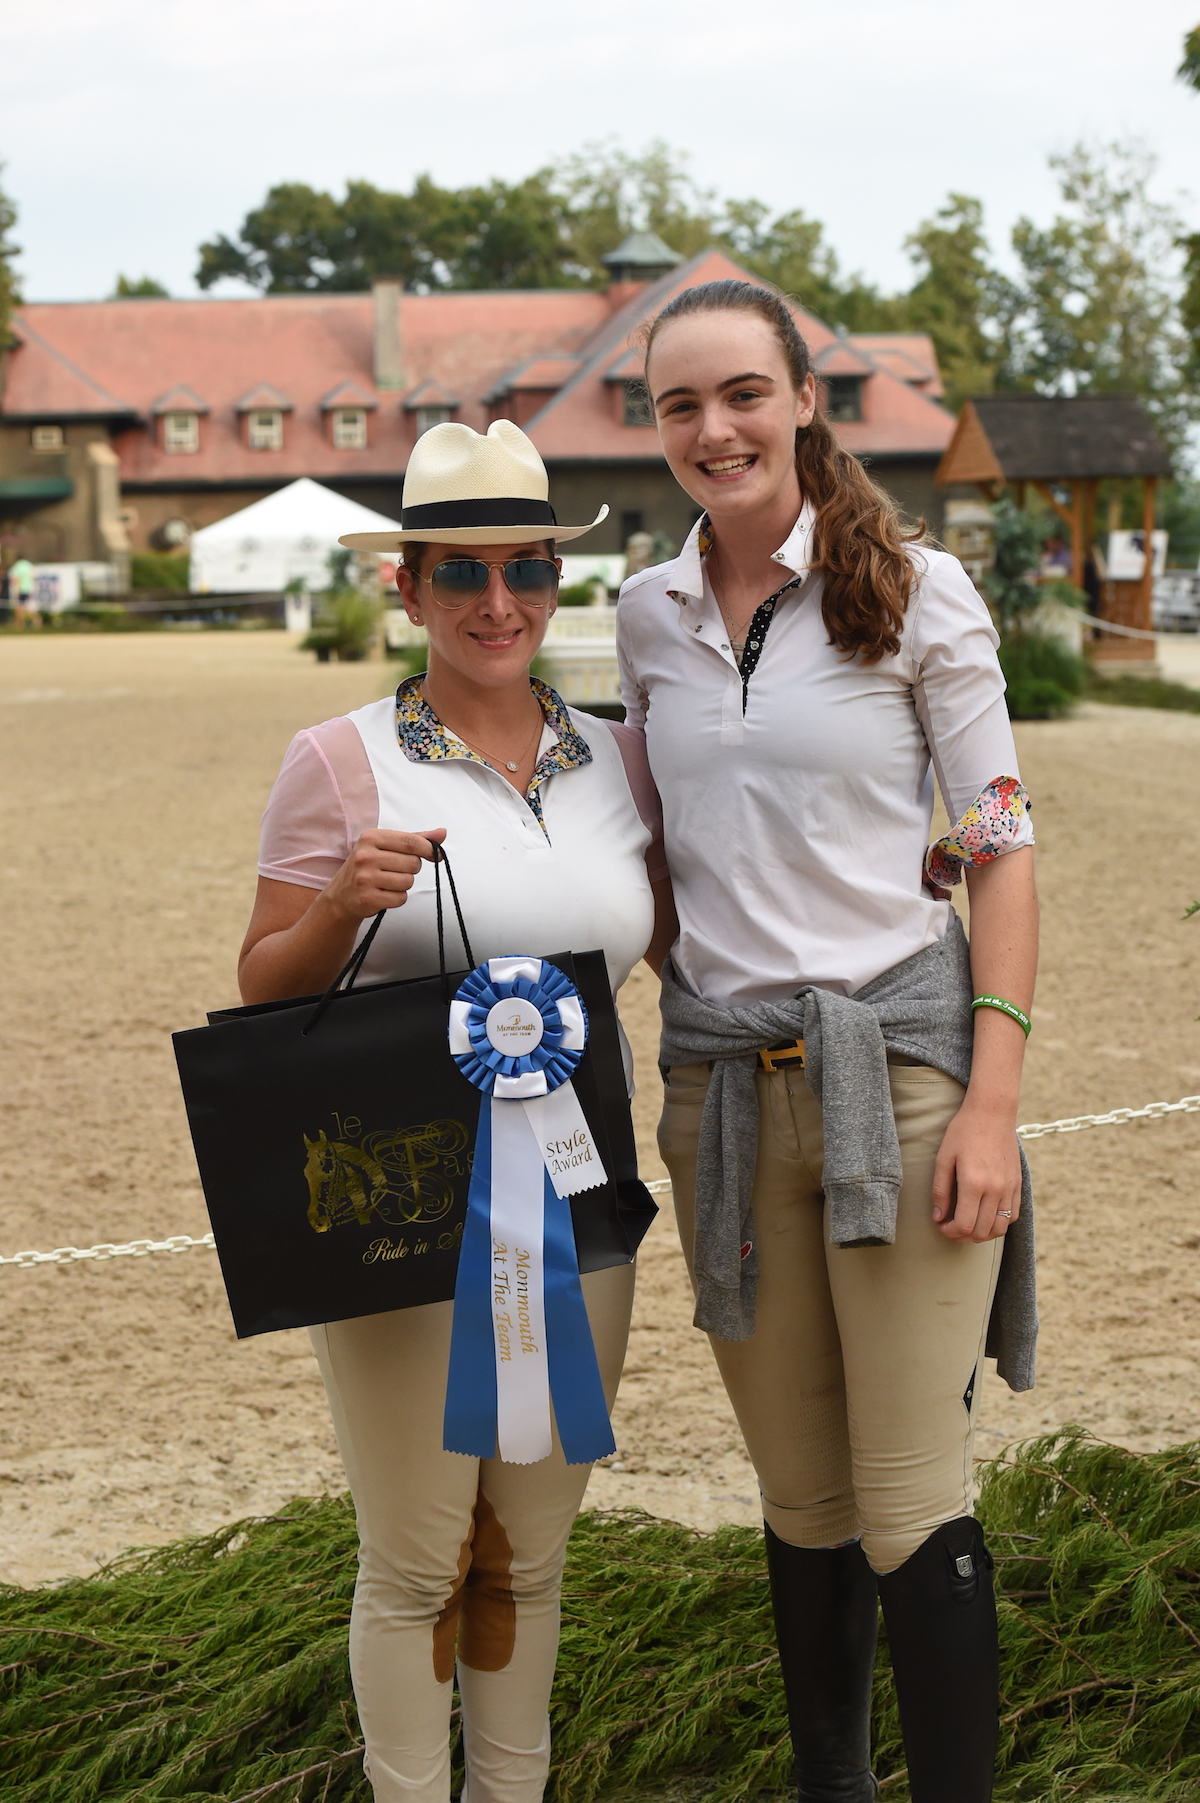 Arianna Vastino presented the Style of Riding award, sponsored by Le Fash, to Devon Thomas. Photo by Anne Gittins Photography